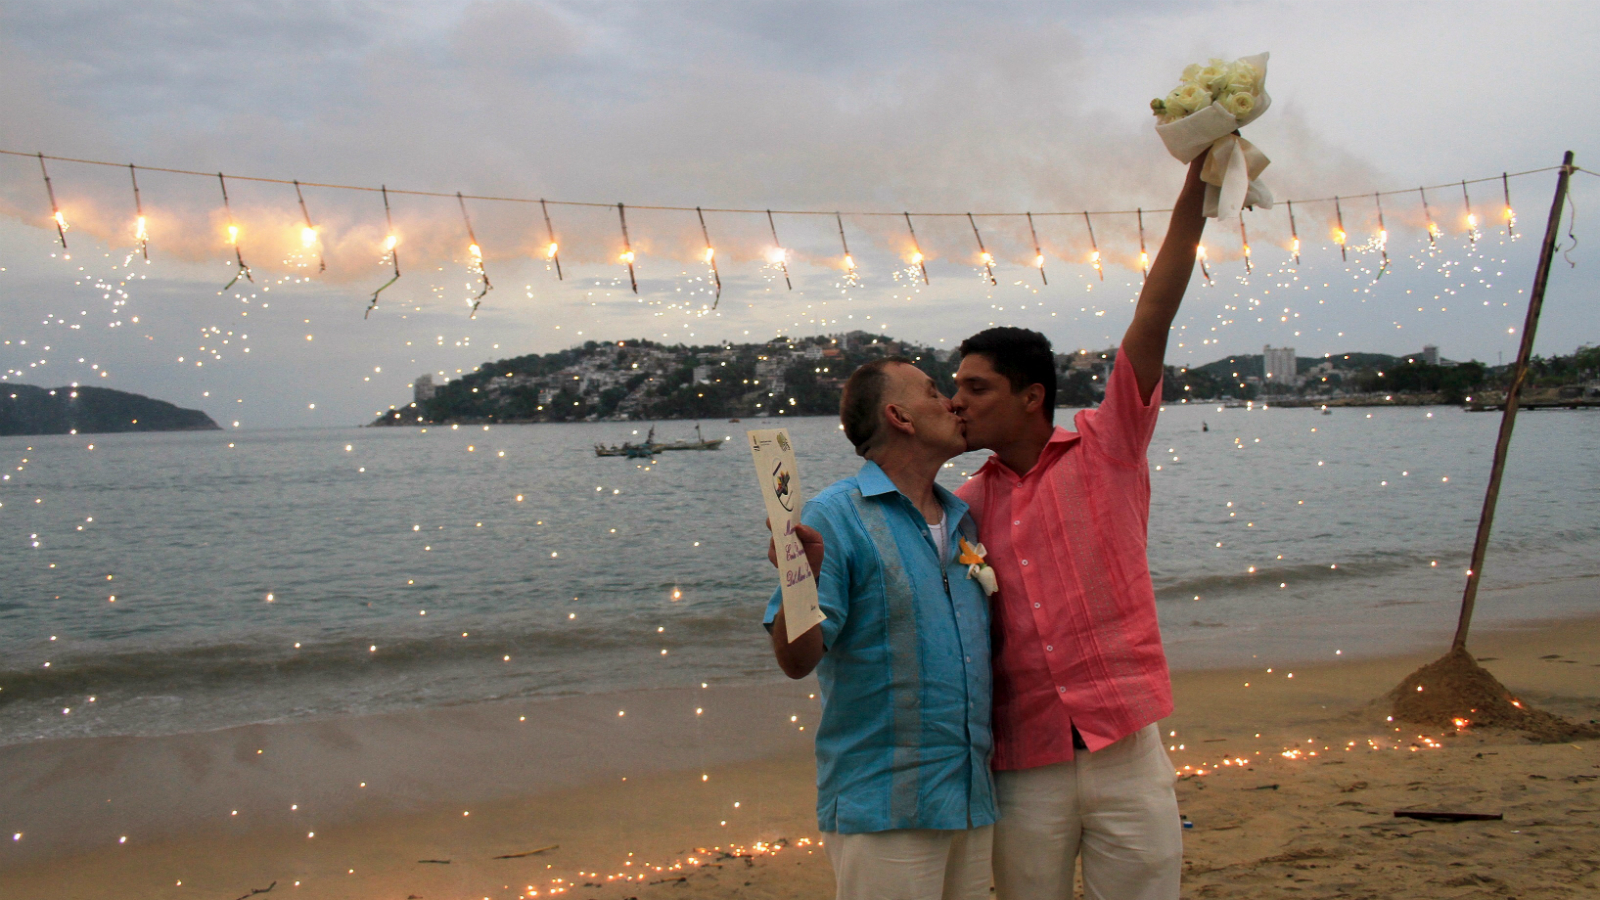 A couple kisses after taking part in a group wedding in Acapulco, Mexico, July 10, 2015. Twenty gay and lesbian couples tied the knot in a group wedding on Friday, in a ceremony organised by the local government, one month after Mexico's Supreme Court ruled that laws restricting marriage to a man and a woman were unconstitutional, local media reported. REUTERS/Claudio Vargas